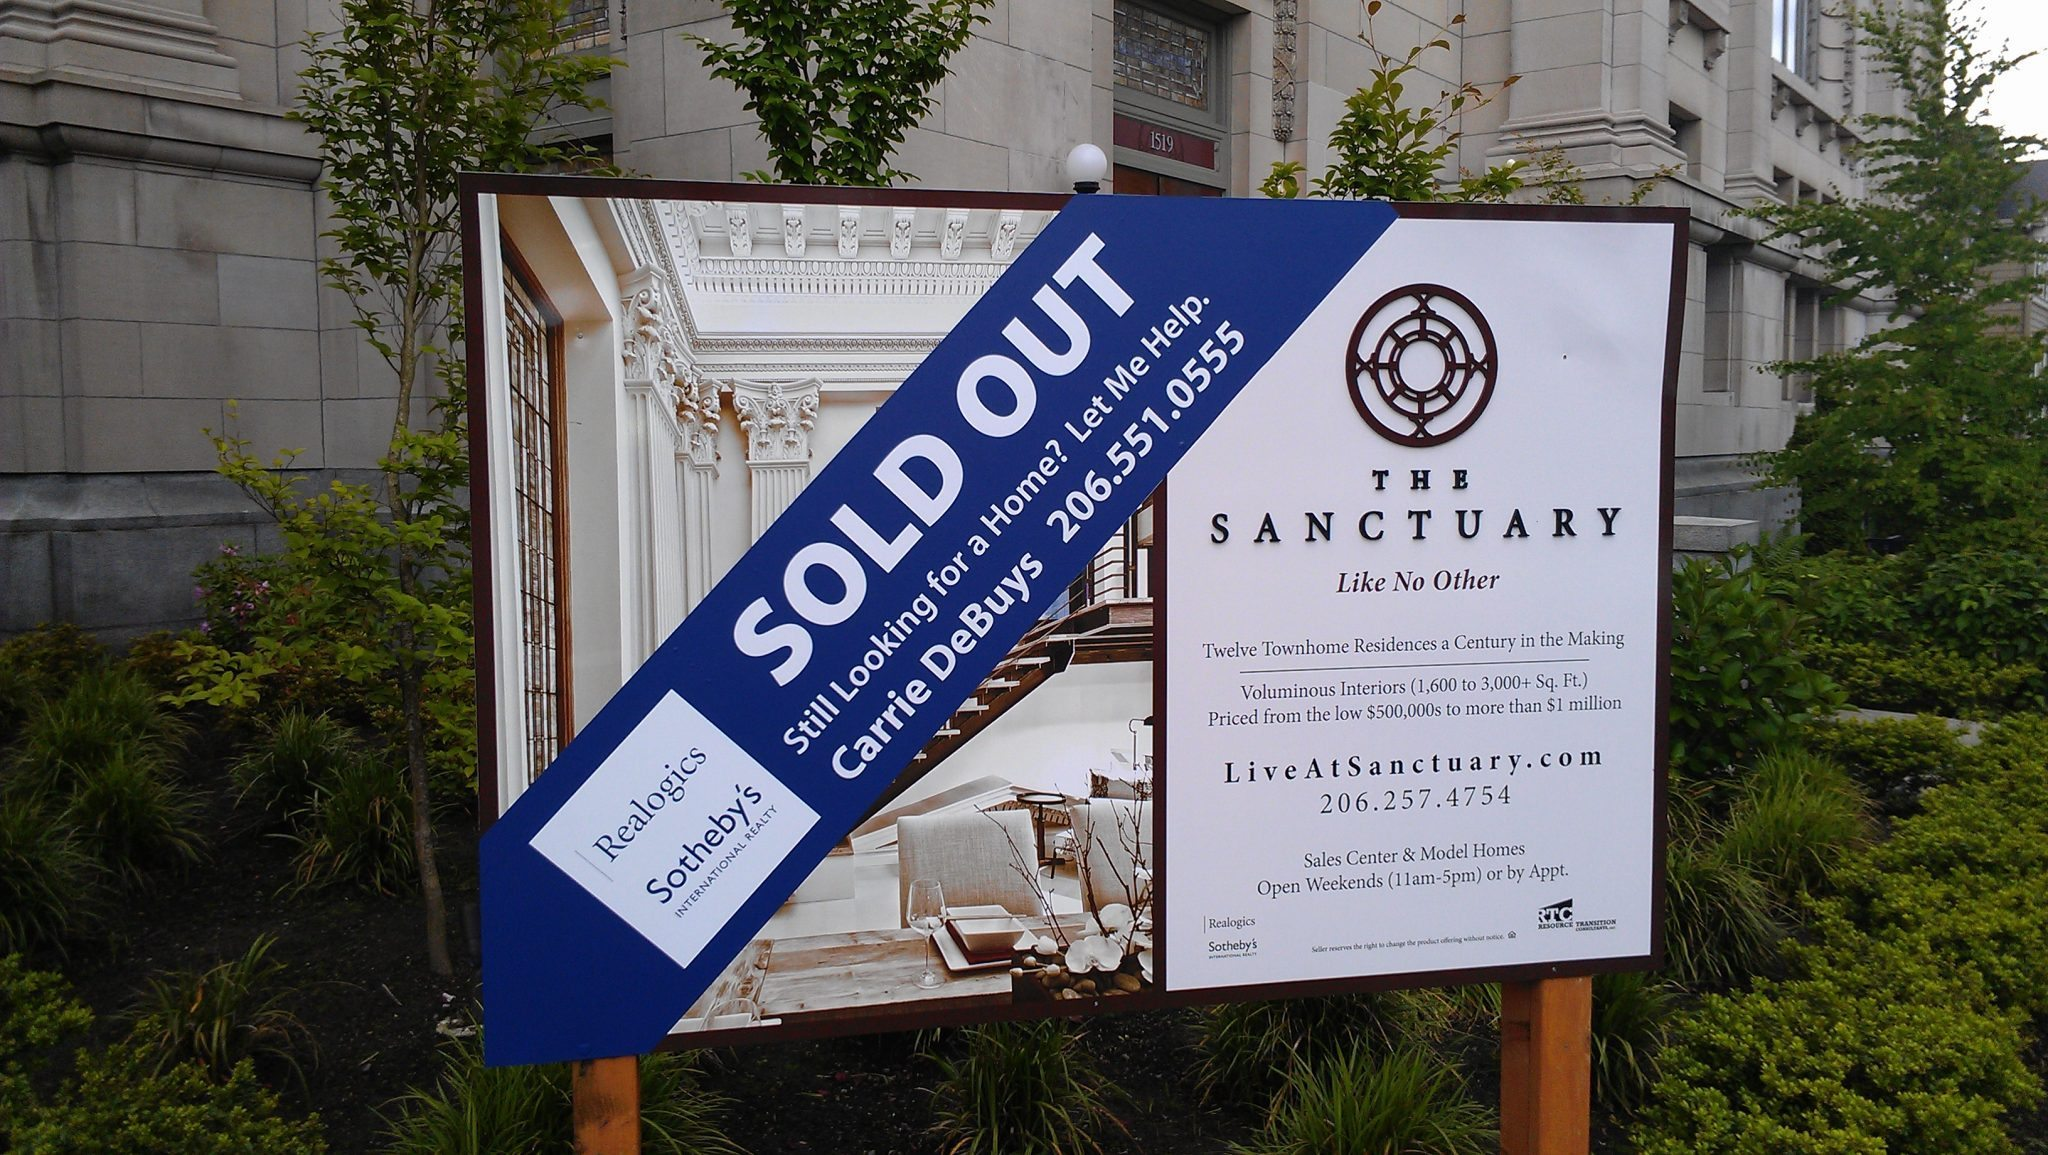 The Sanctuary is Now Officially Sold Out